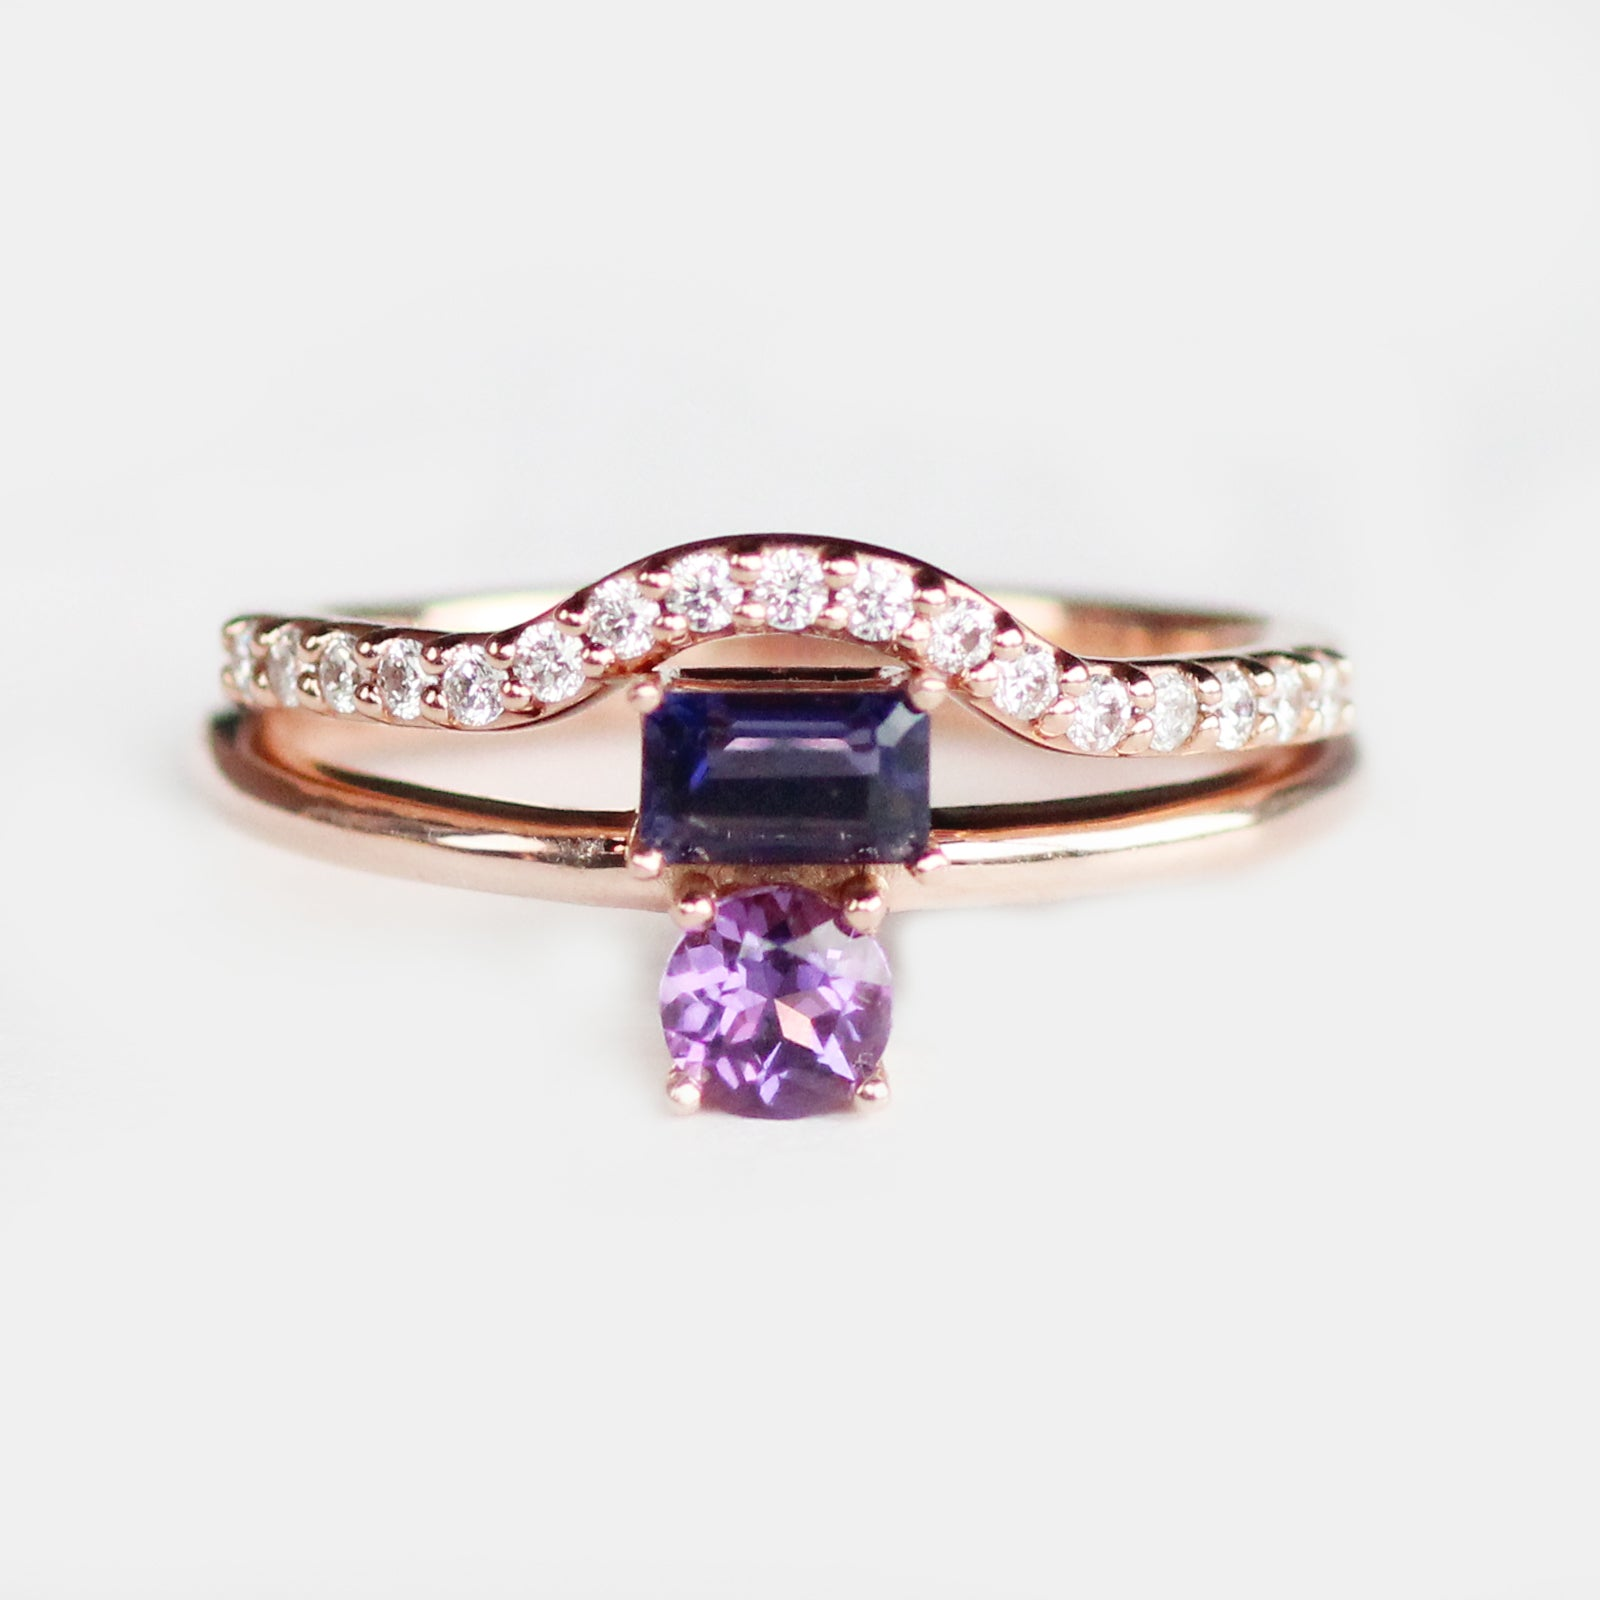 Darlina - Amethyst and Iolite Asymmetrical Double Ring - Your choice of metal - Custom - Celestial Diamonds ® by Midwinter Co.